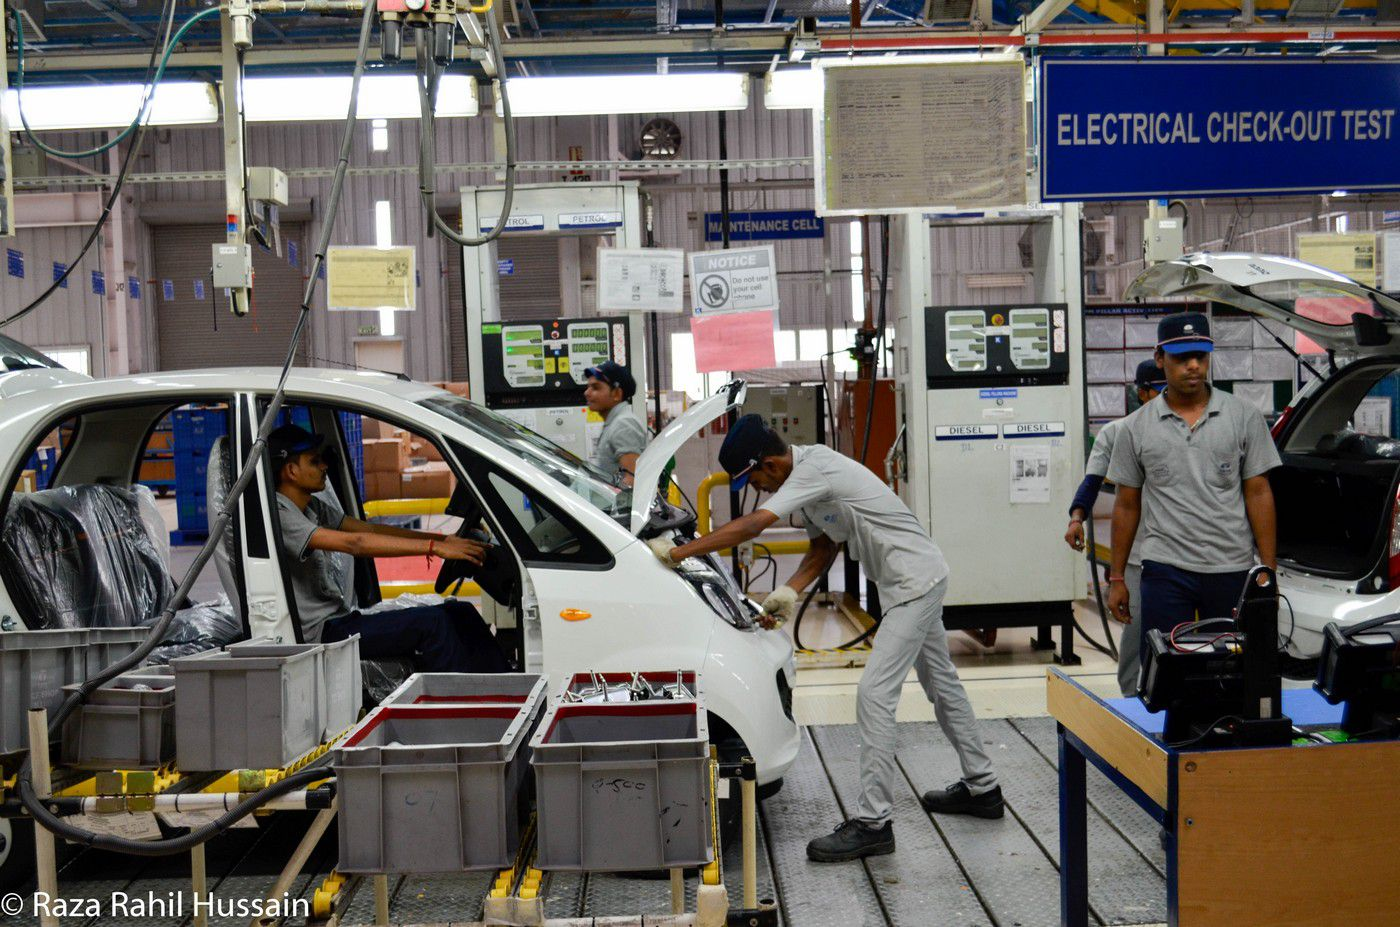 tata nano plant layout The tata nano is a city car manufactured by tata motorsmade and sold in india, the nano was initially launched with a price of one lakh rupees or ₹ 100,000 (us$1,500), [4] which has increased with time.